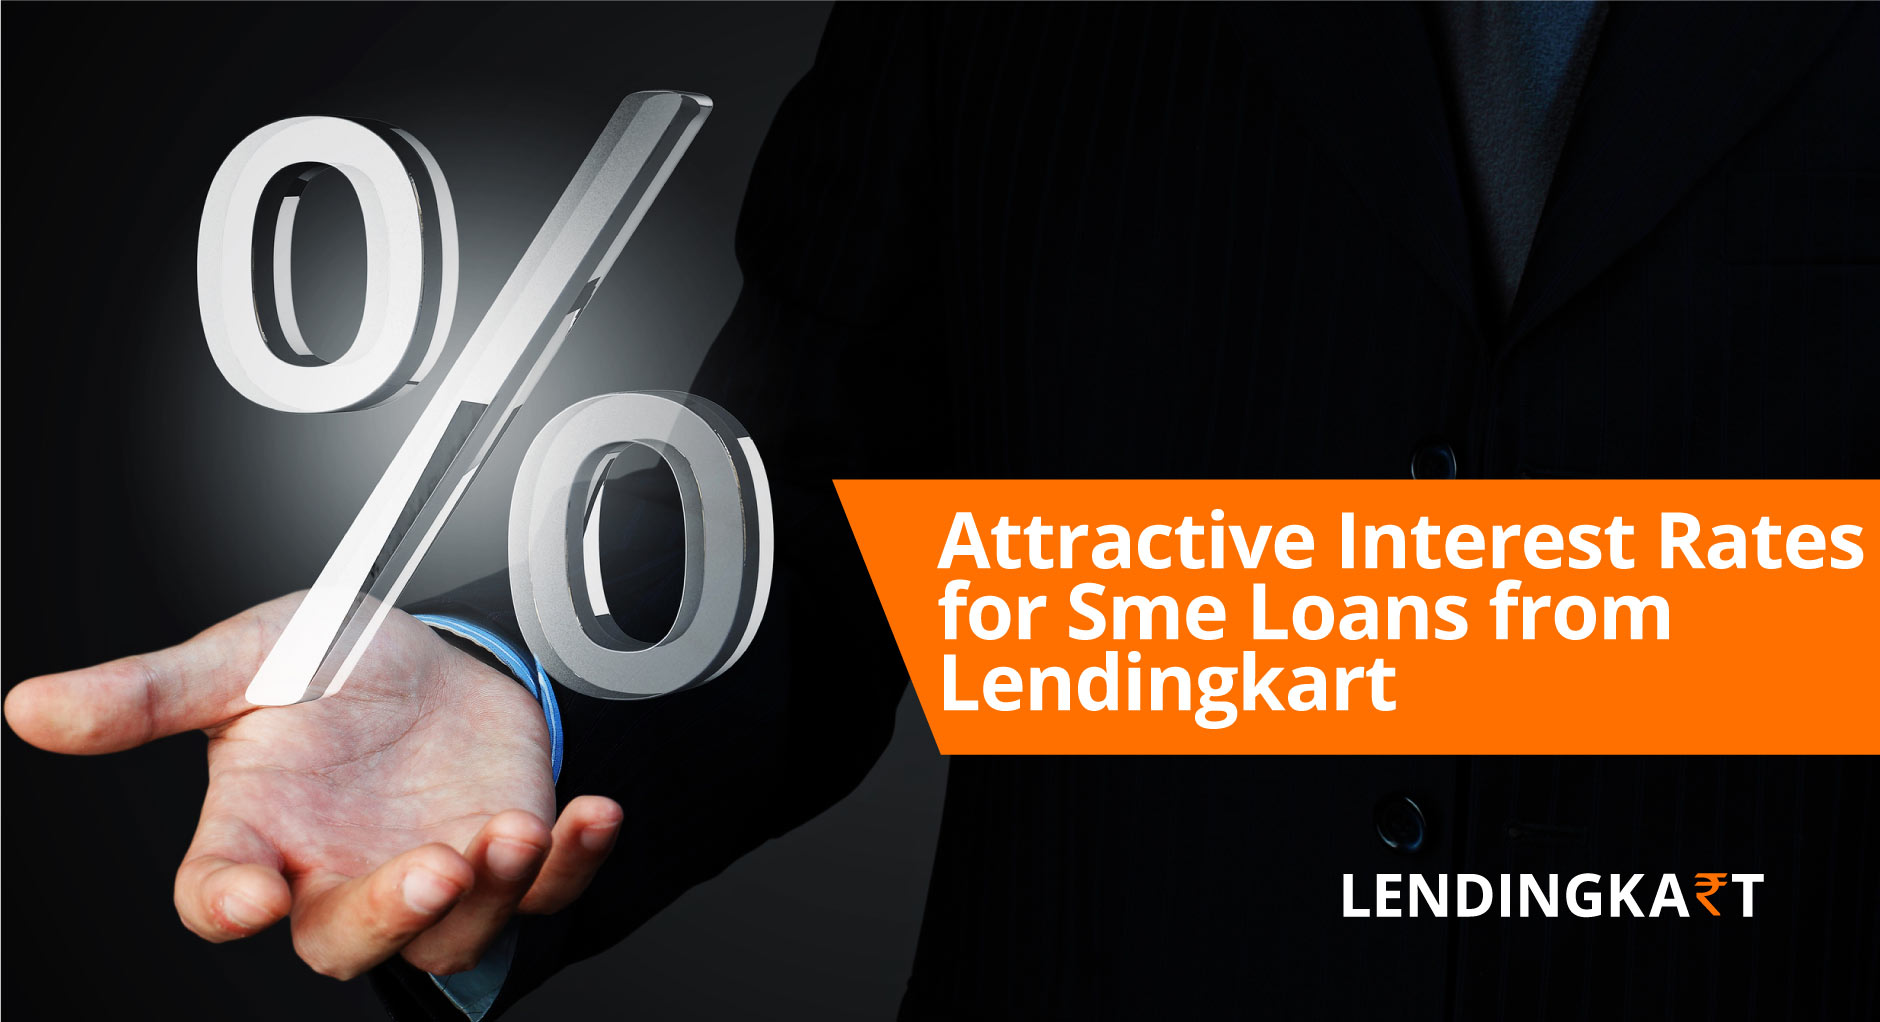 Attractive Interest Rates from Lendingkart